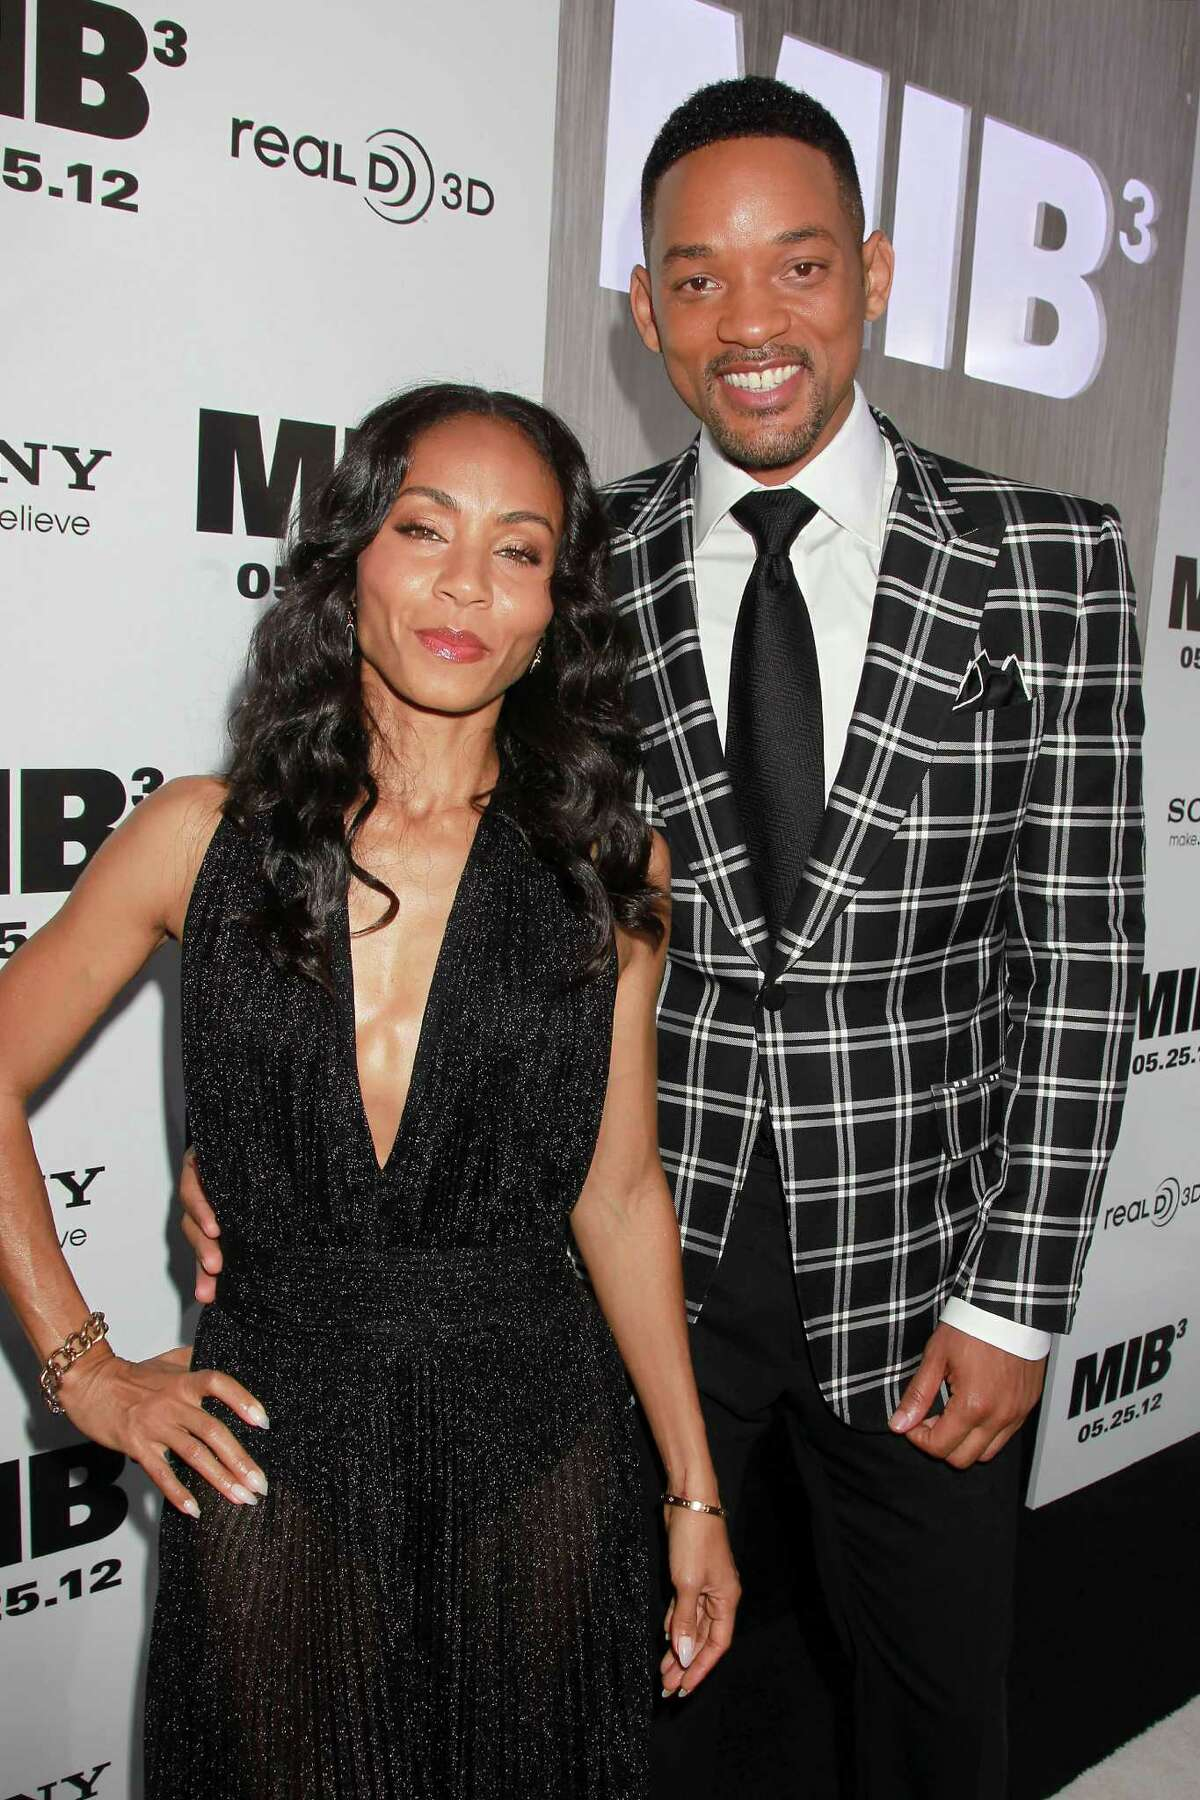 In this Wednesday, May 23, 2012 photo released by Starpix, Jada Pinkett-Smith, left, and her husband Will Smith arrive at the premiere of his film,